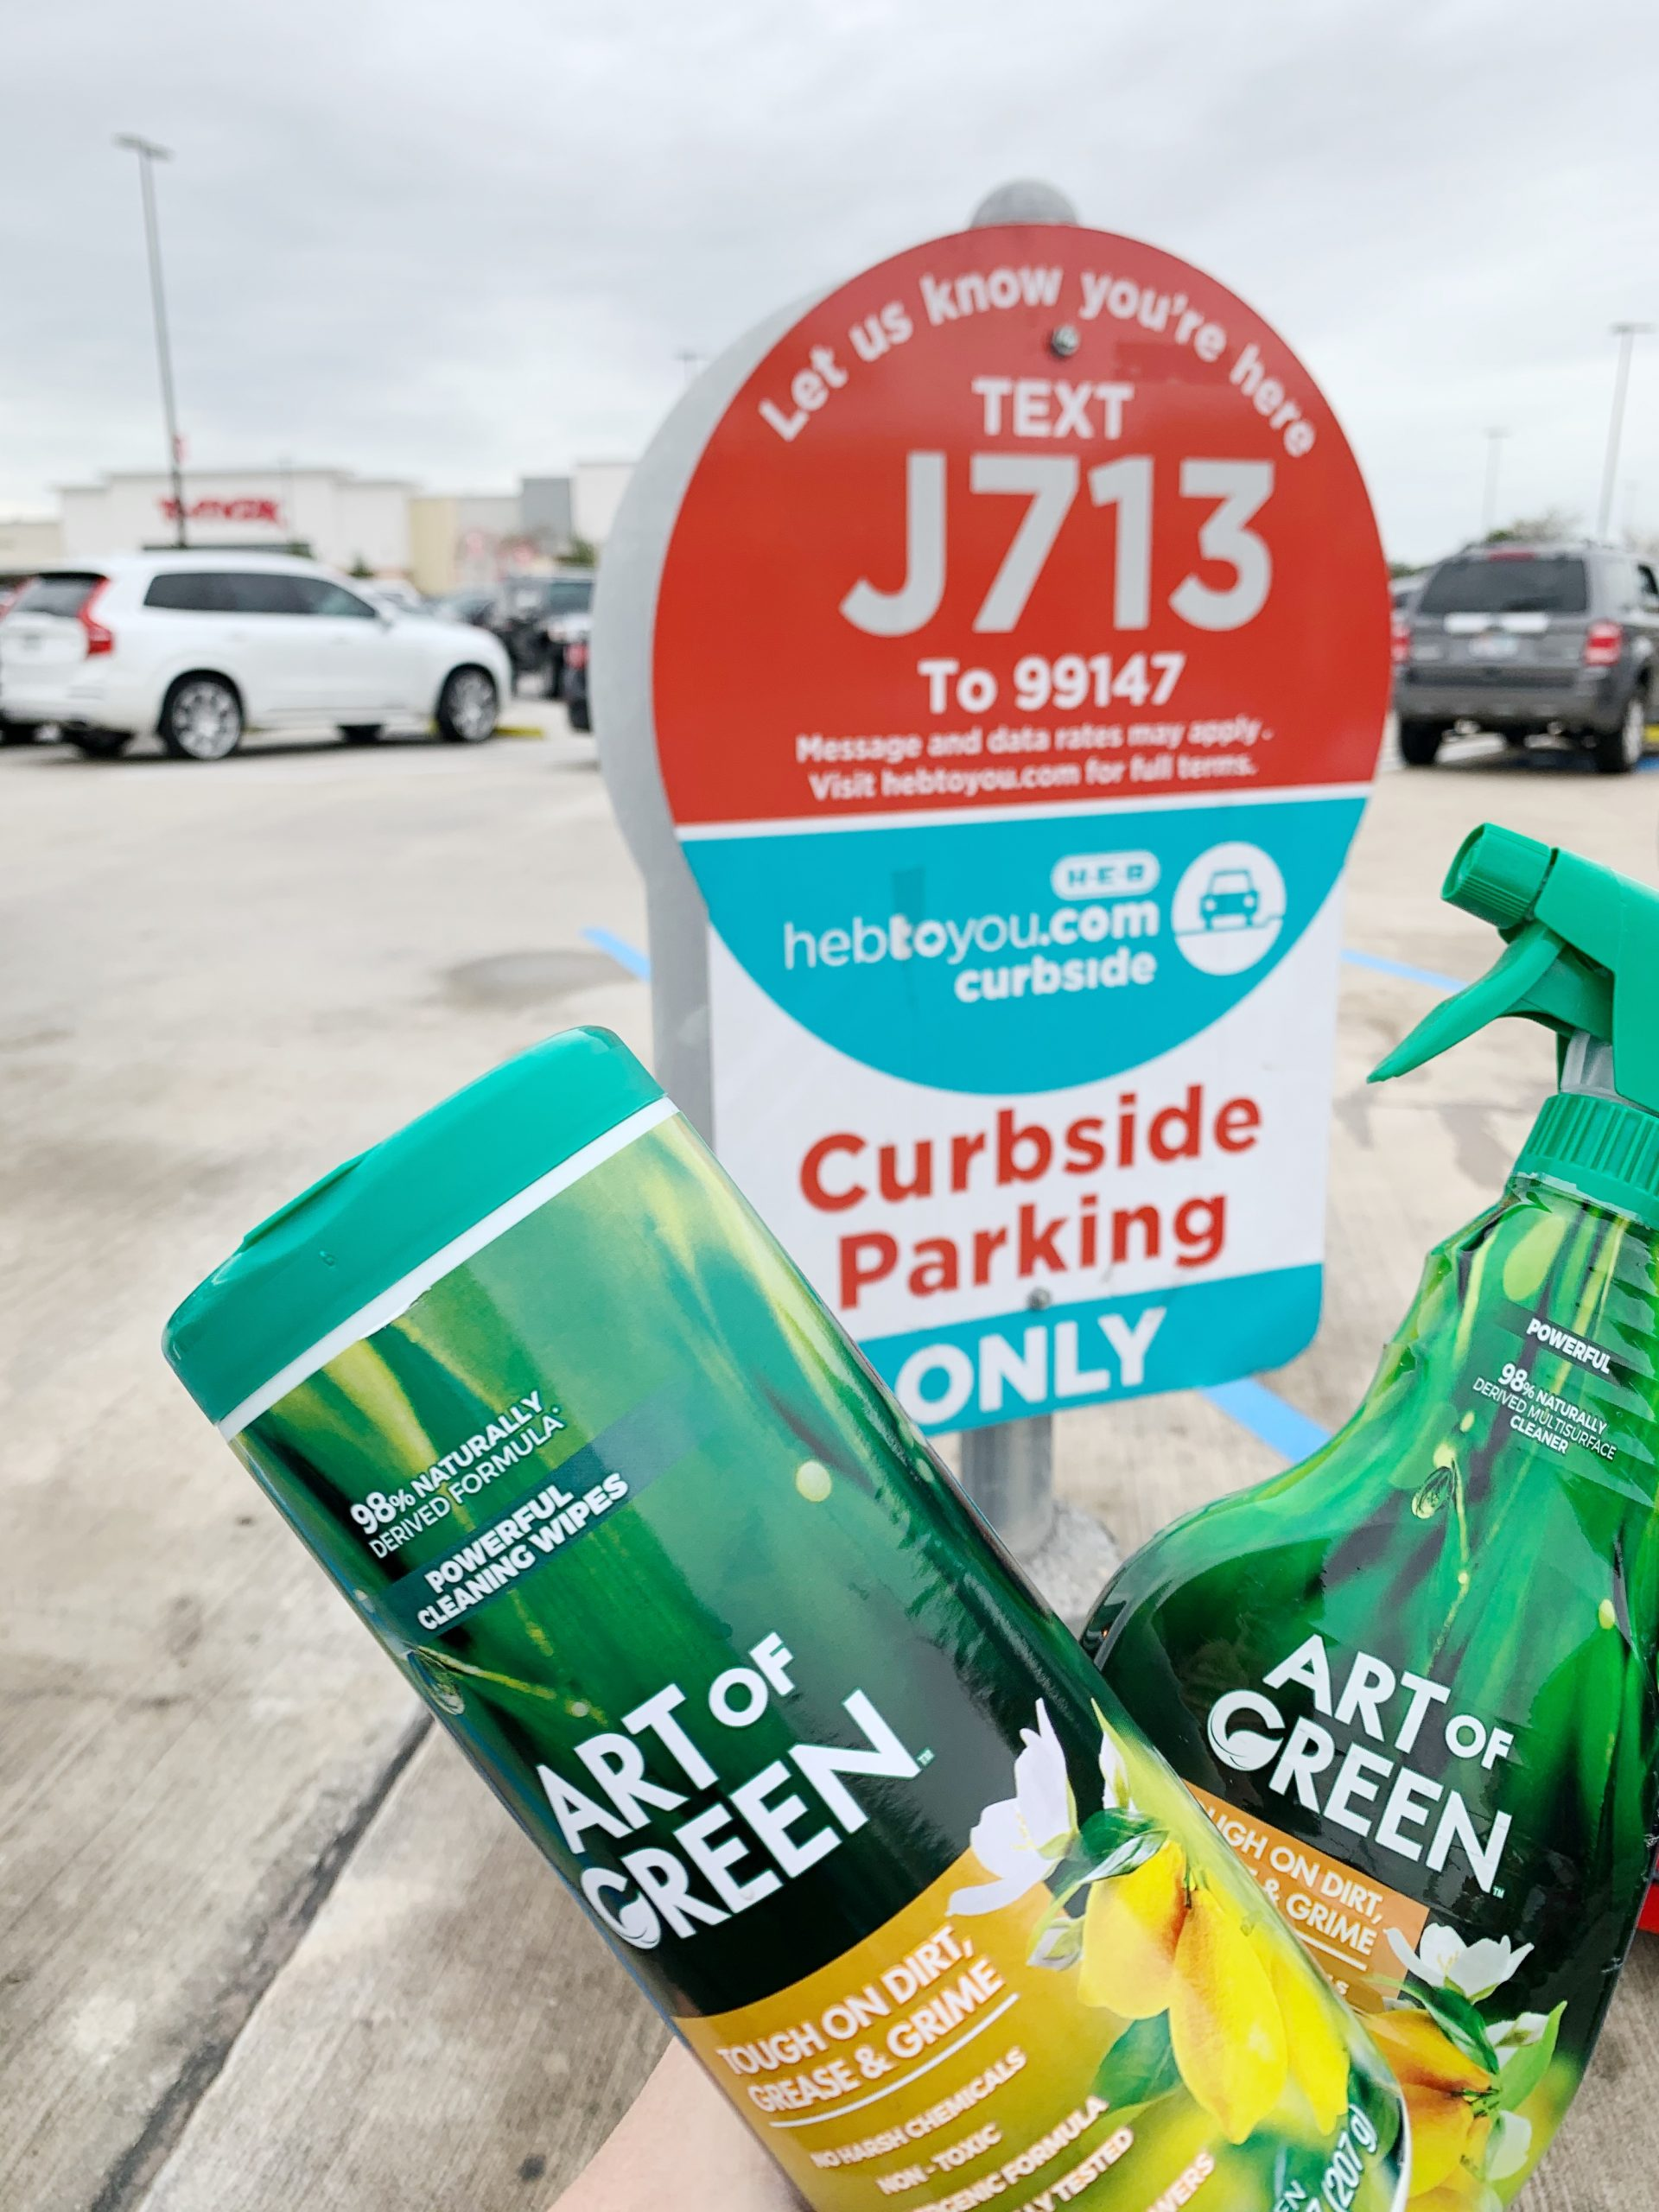 Art of Green cleaning products at HEB